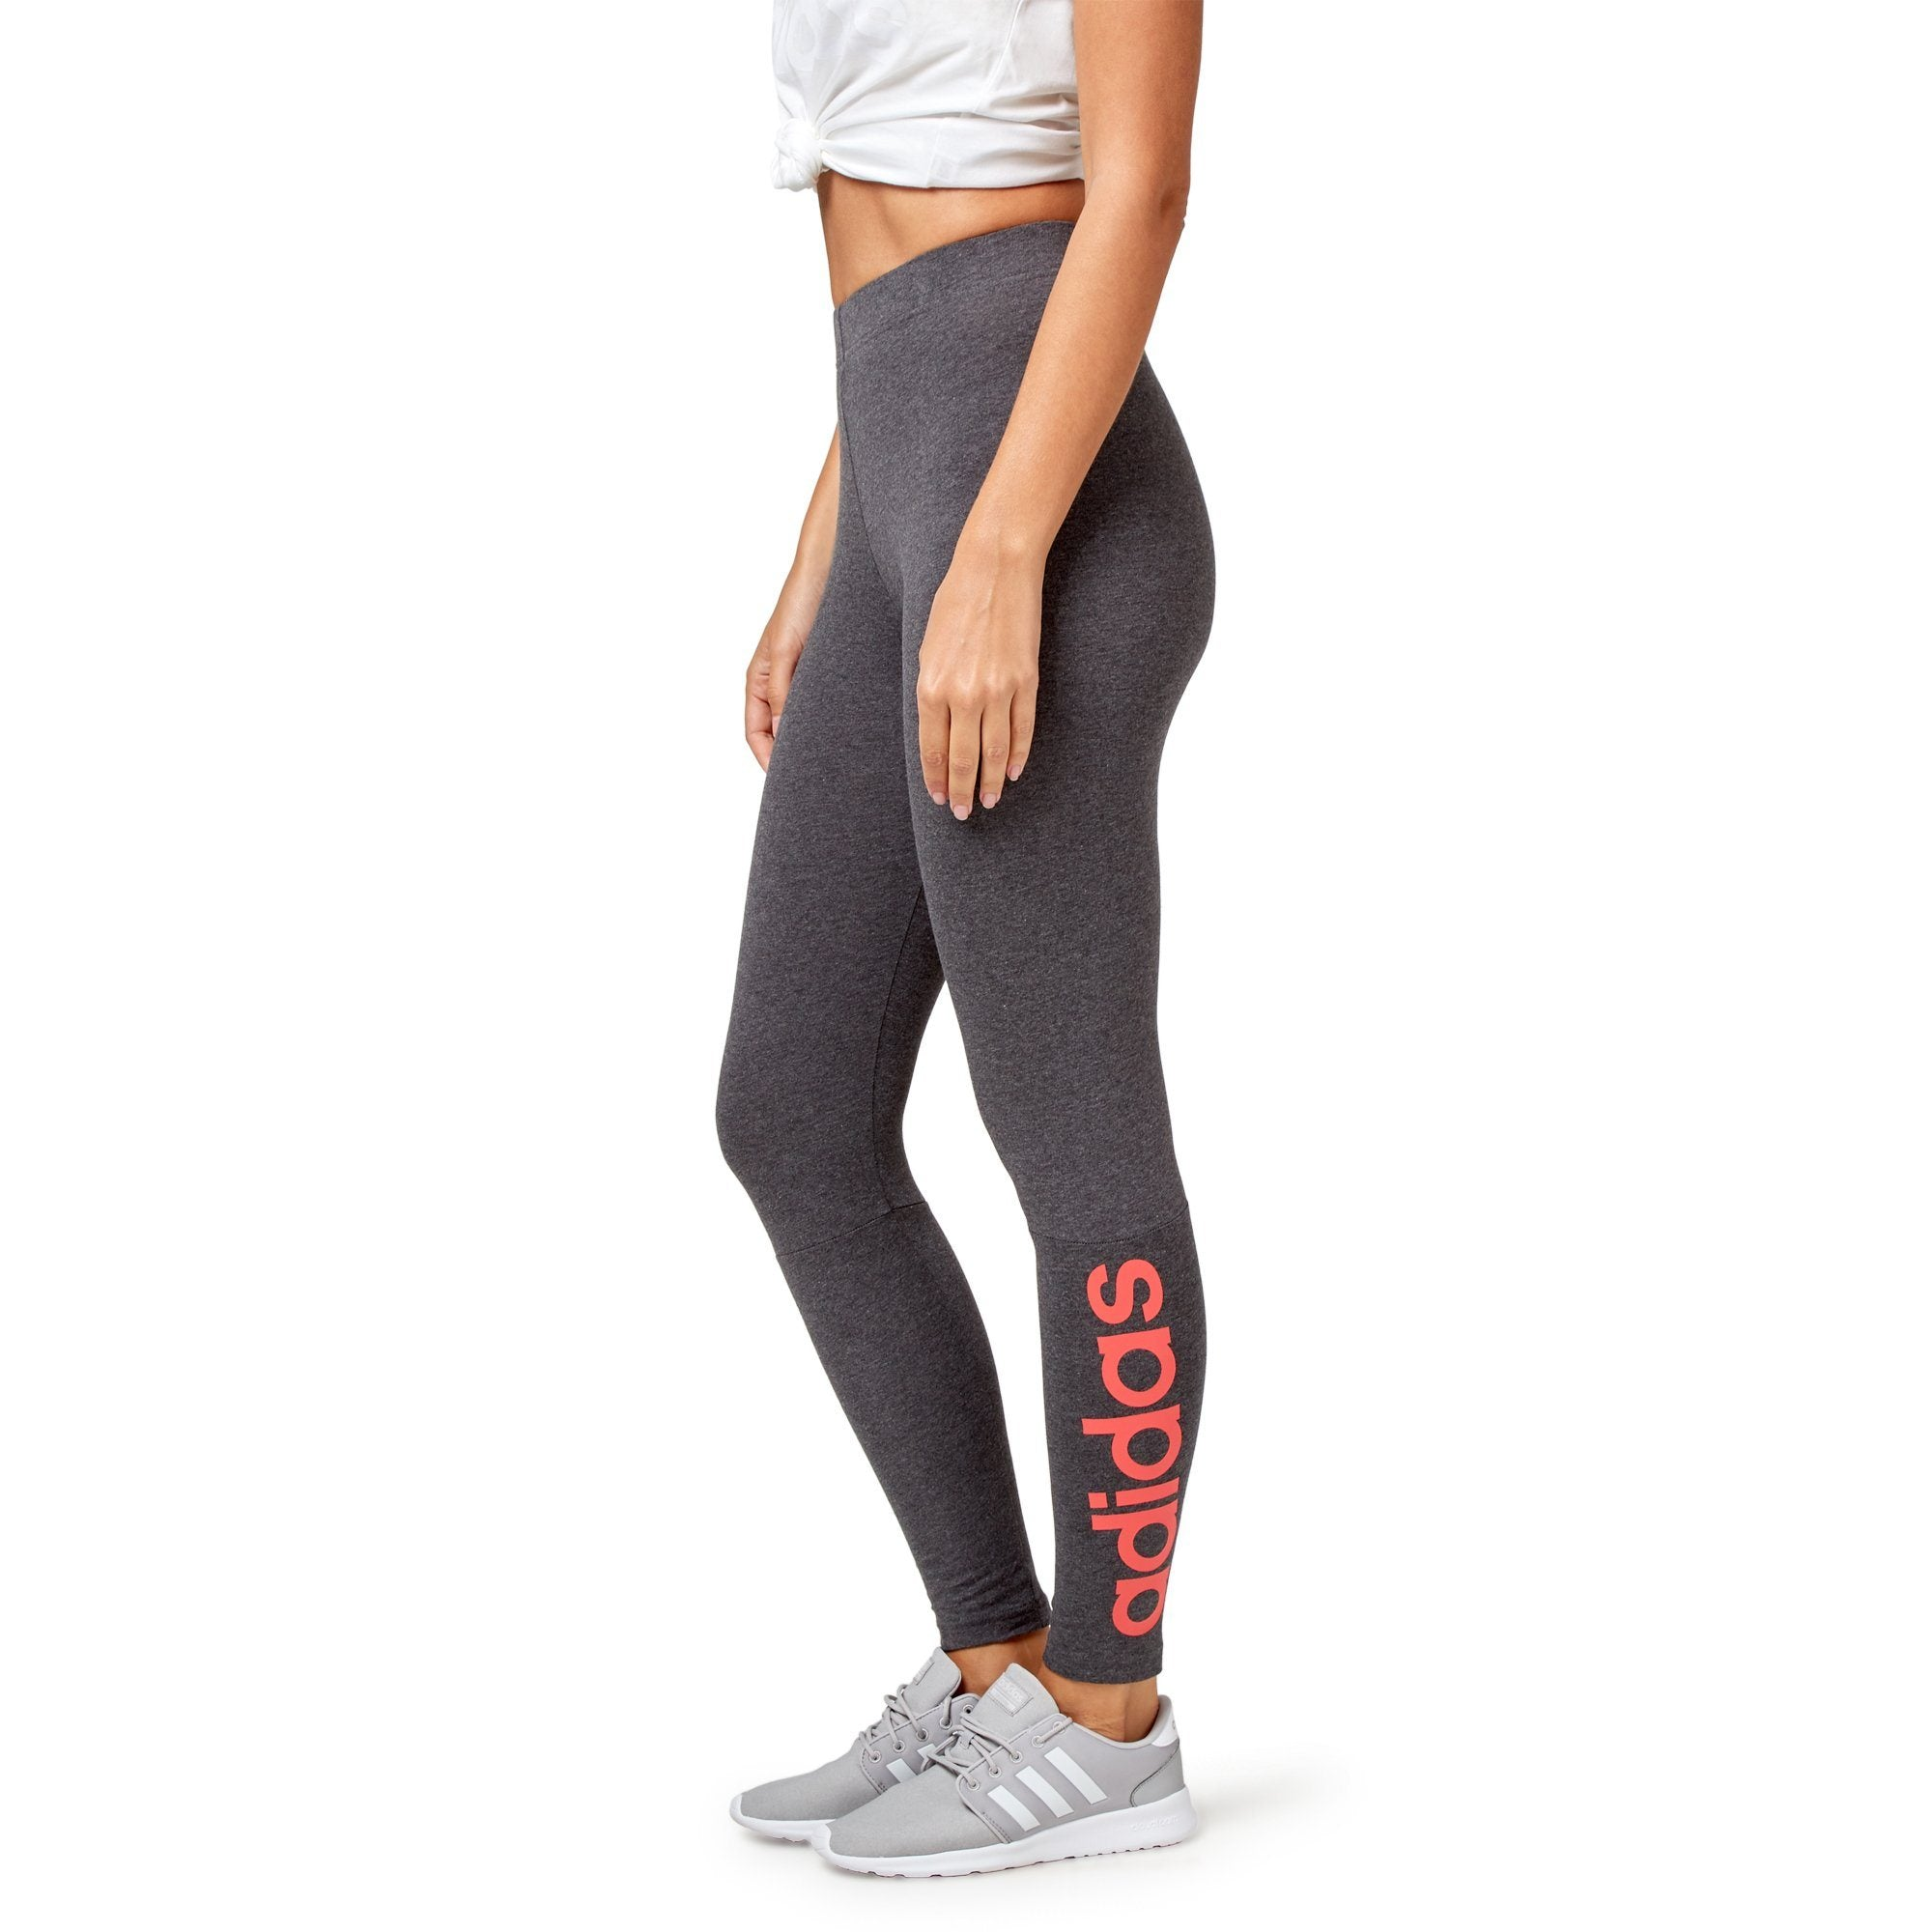 Adidas Women's Essential Linear Tight with Logo - Dark Grey Heather/Real Coral Apparel Adidas  (2012420669499)